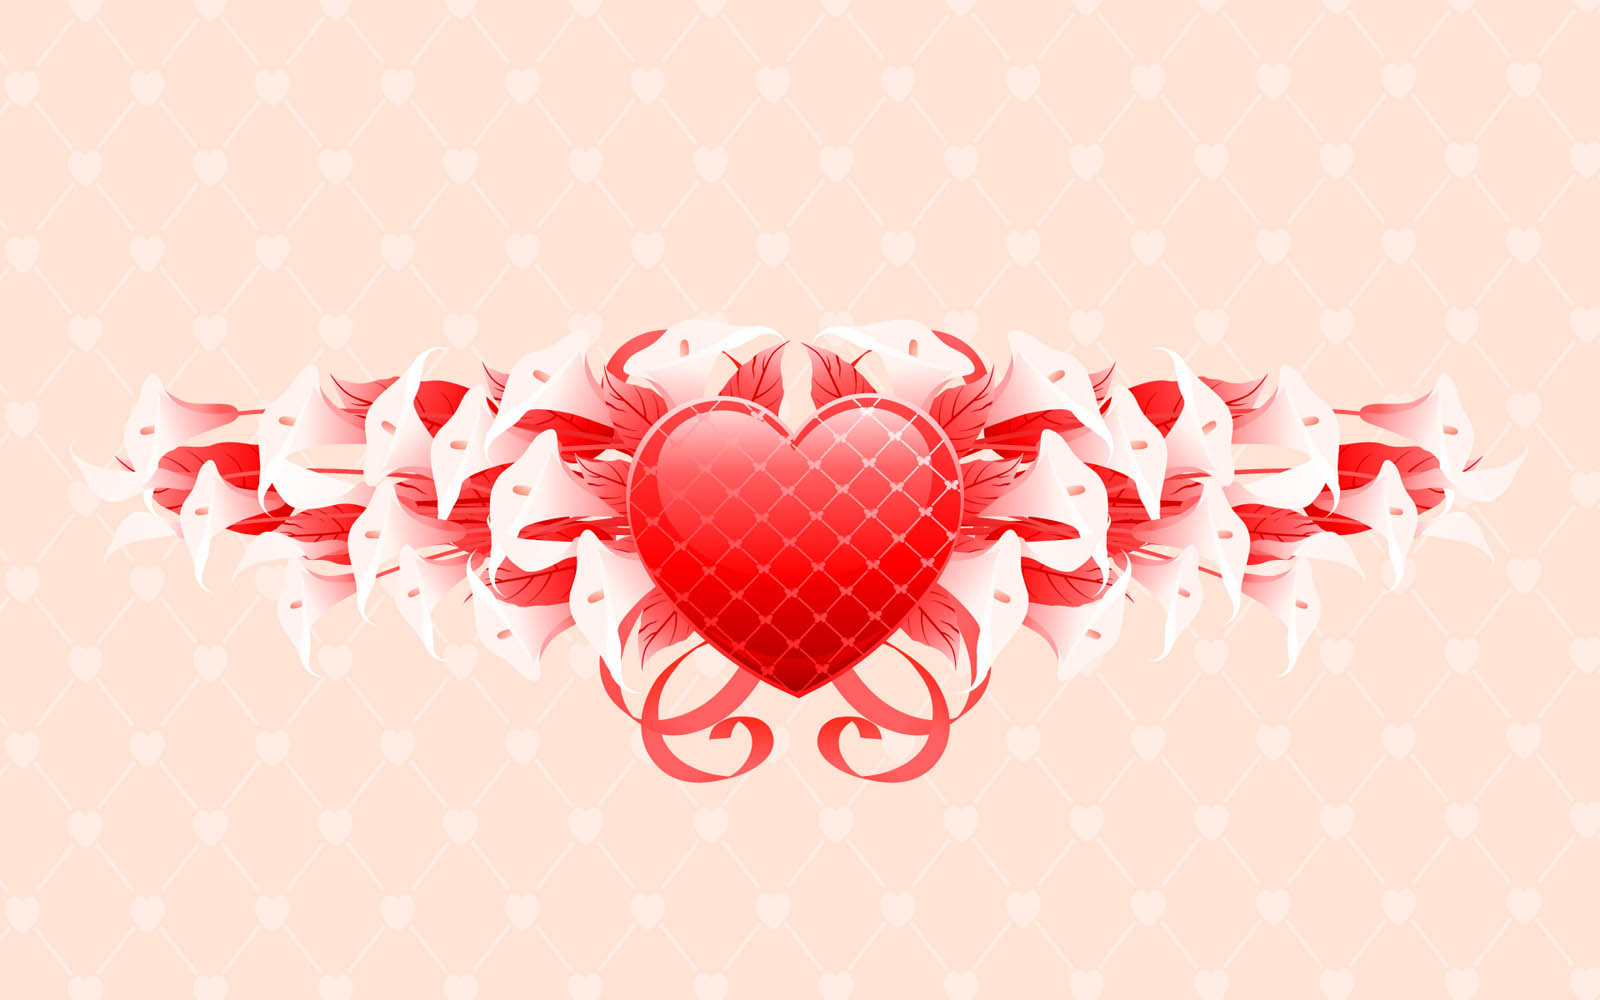 Love Images For Wallpaper : wallpapers: Vector Love Wallpapers